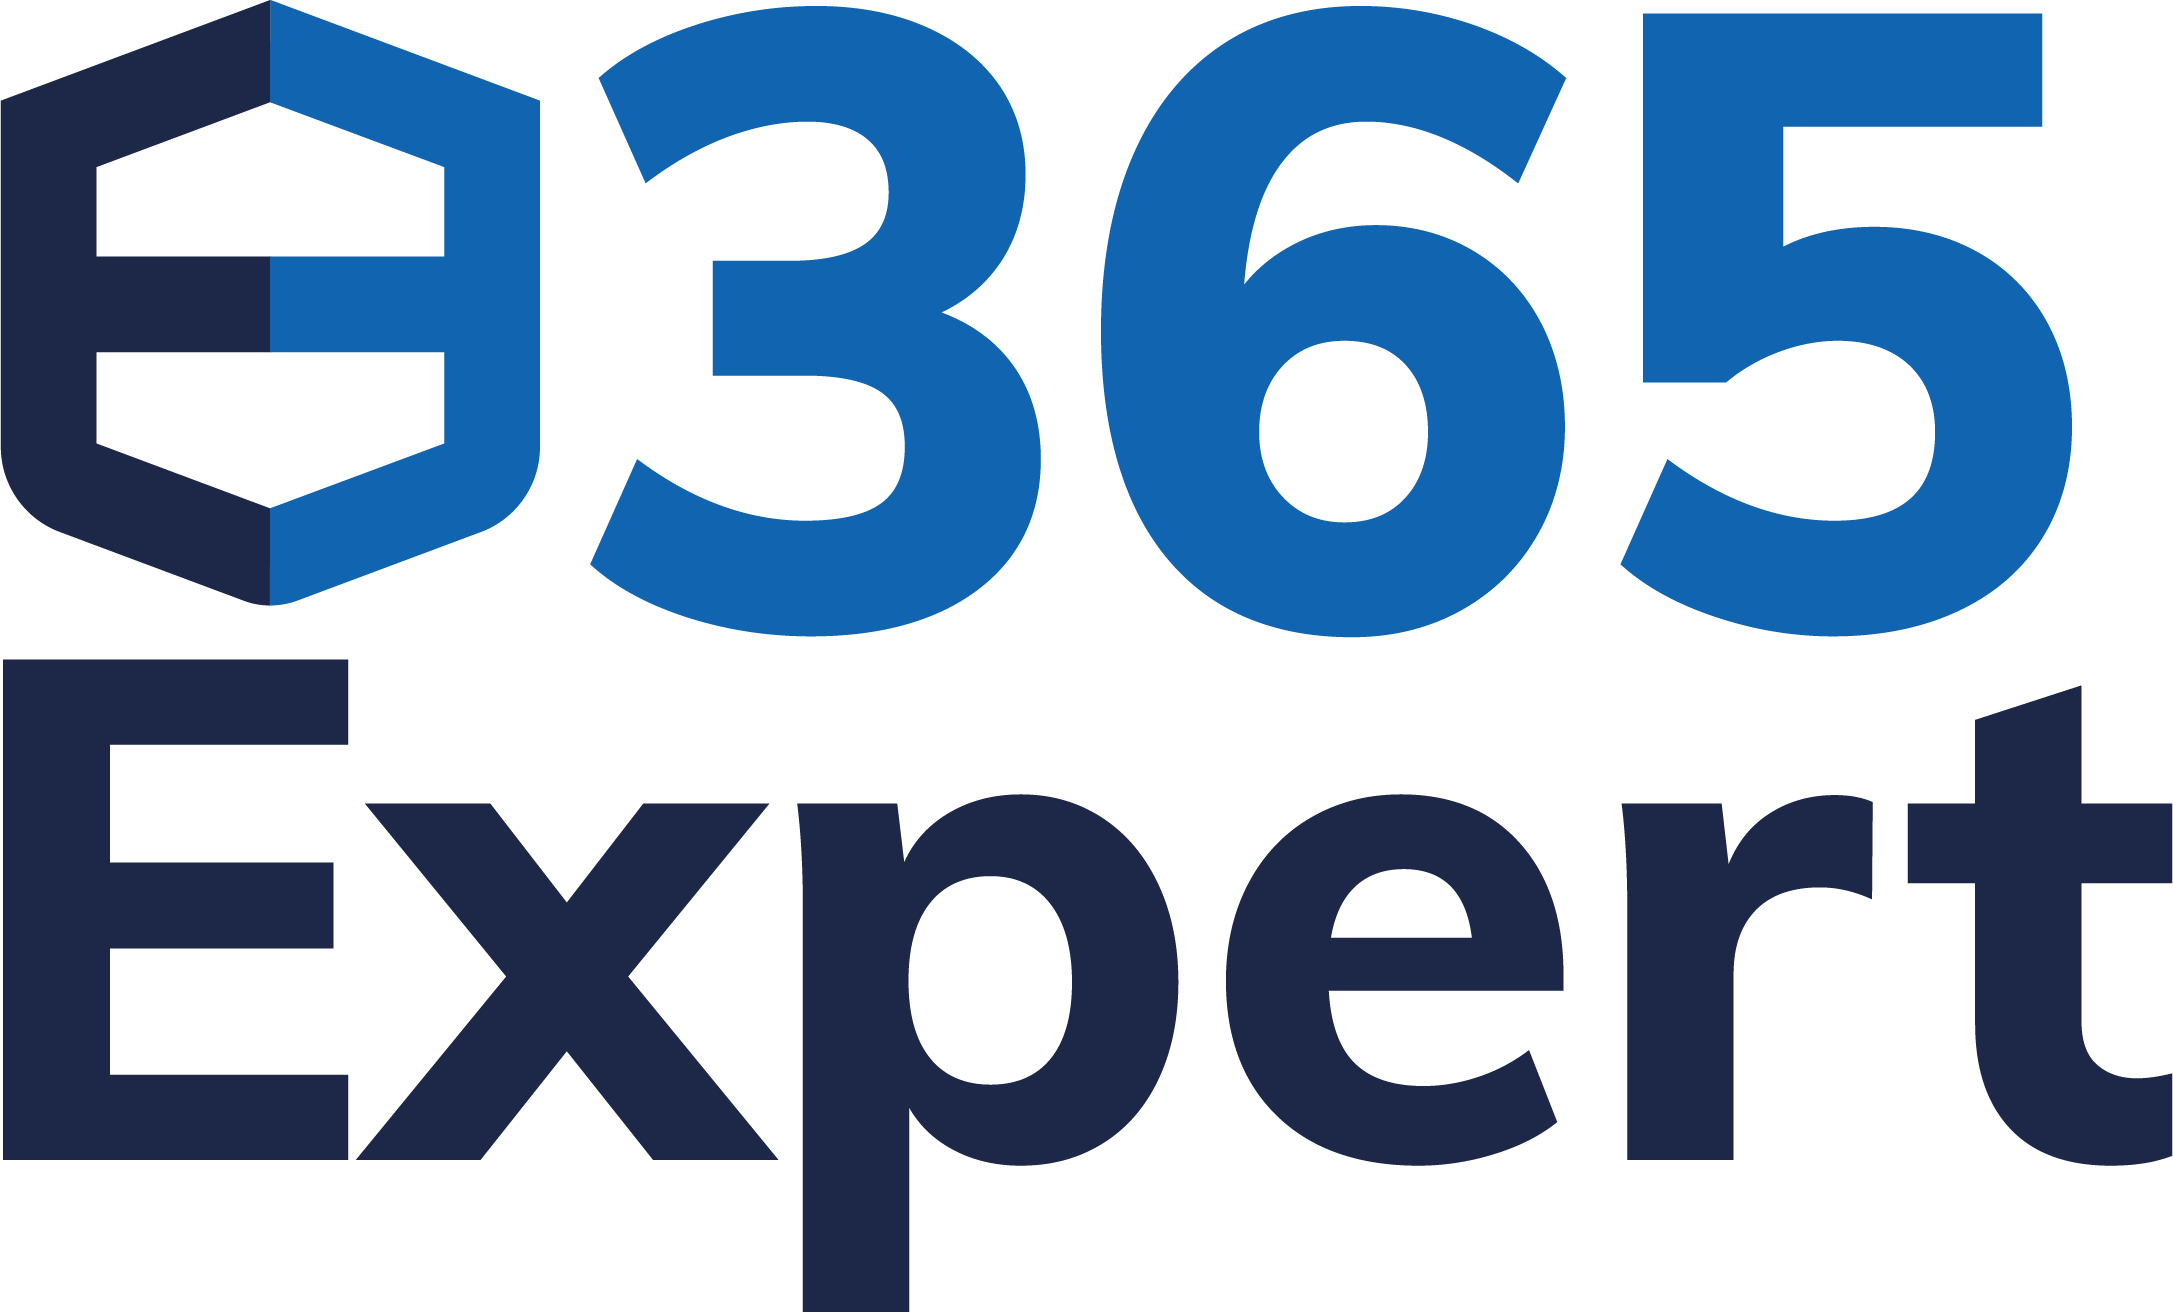 365Expert - Cloud Expertise for the I.T professional